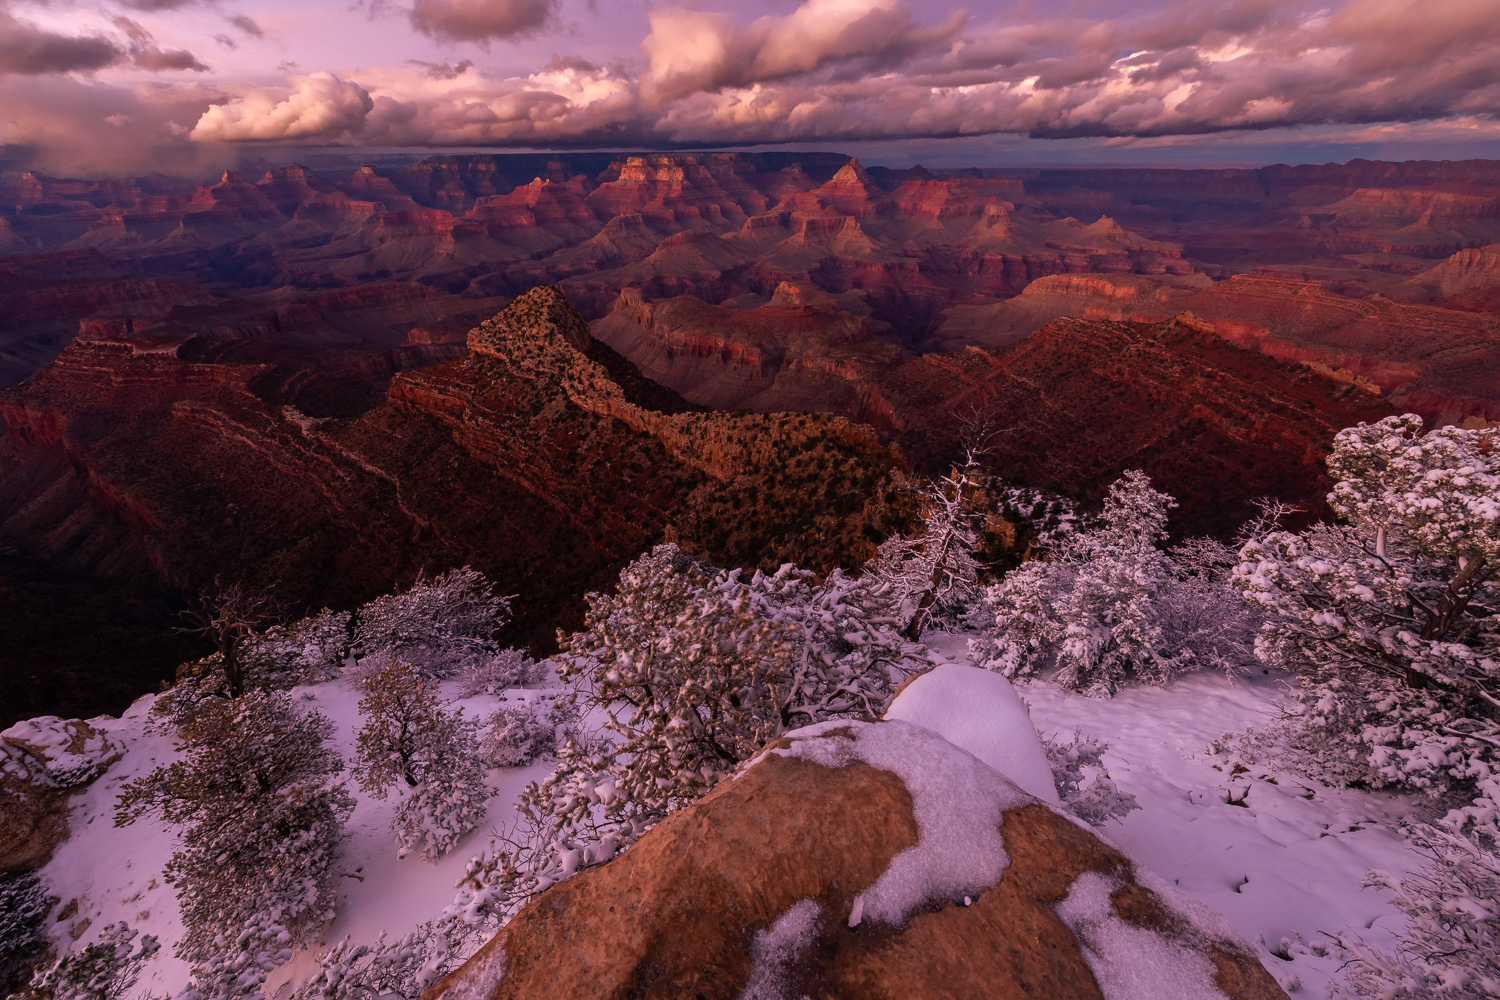 A winter storm over the Grand Canyon from the South Rim, Arizona.